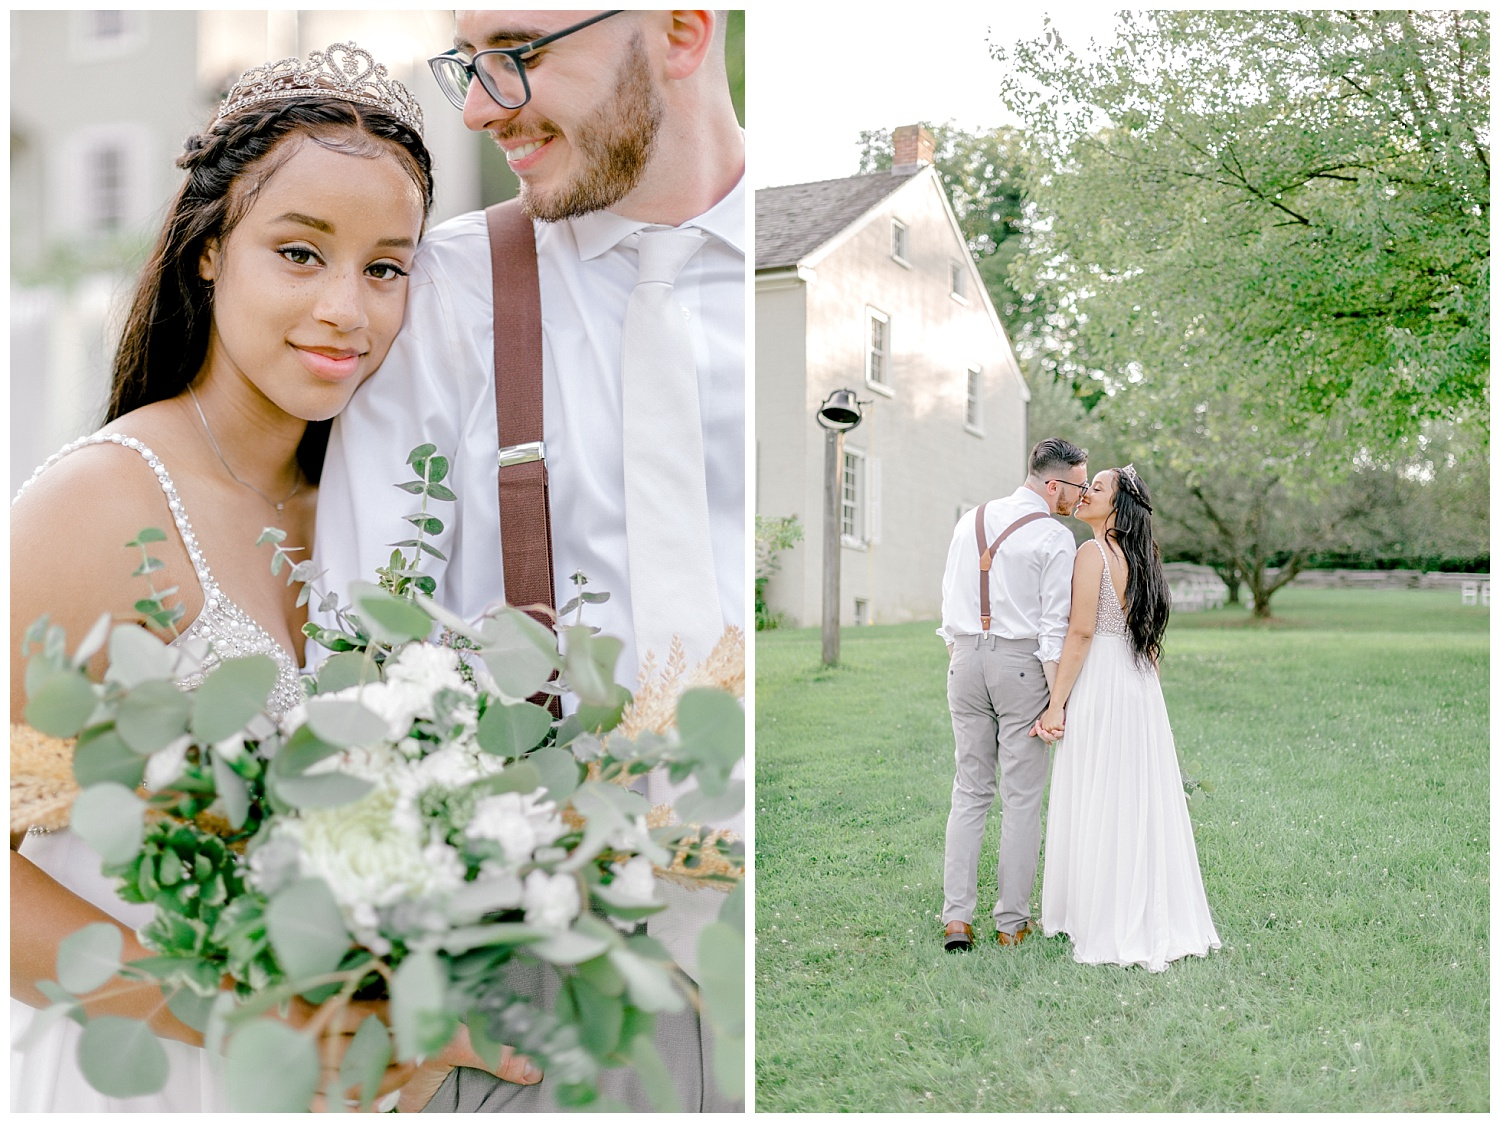 Olive green and white rustic barn wedding at burnside plantation in bethlehem pennsylvania by PA based destination wedding and lifestyle photographer Lytle photography (74).jpg